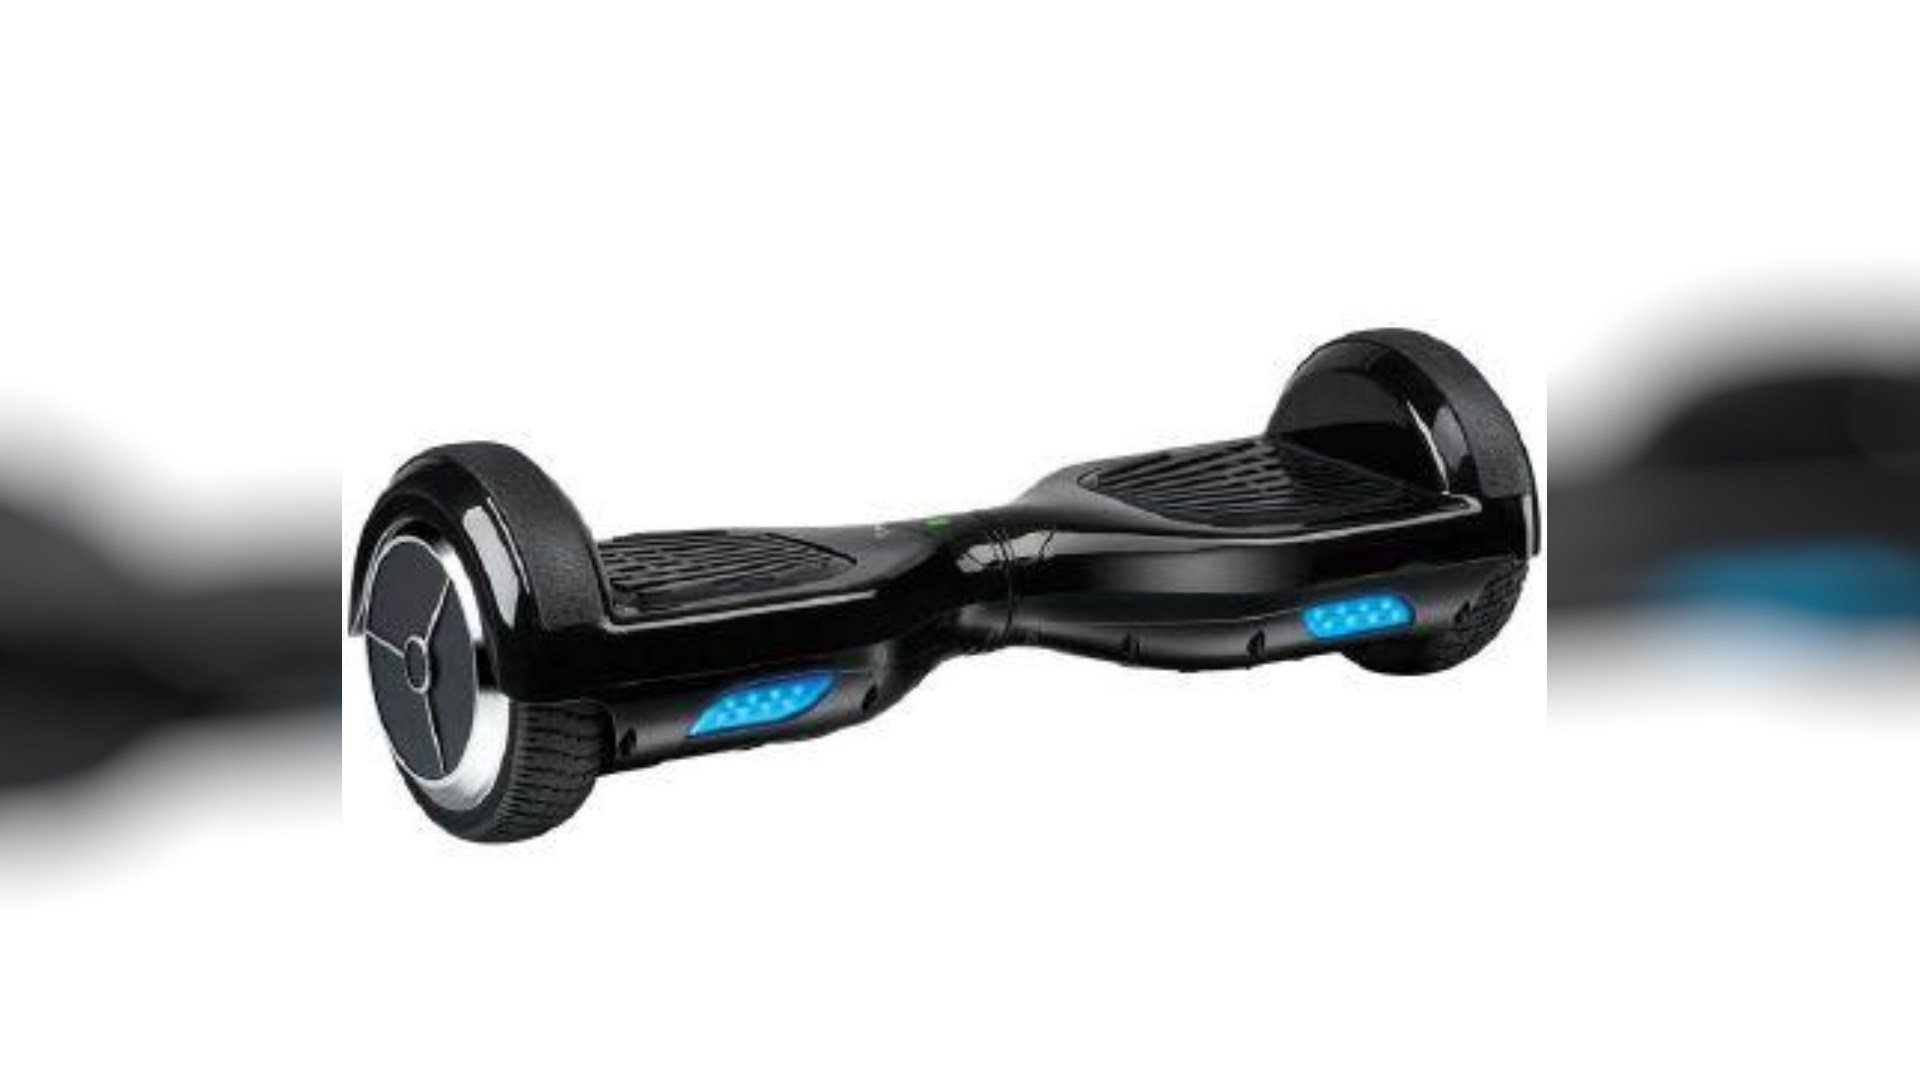 Photo: iLive Self-Balancing Scooters/Hoverboards Recalled by Digital Products Due to Fire Hazard. CPSC